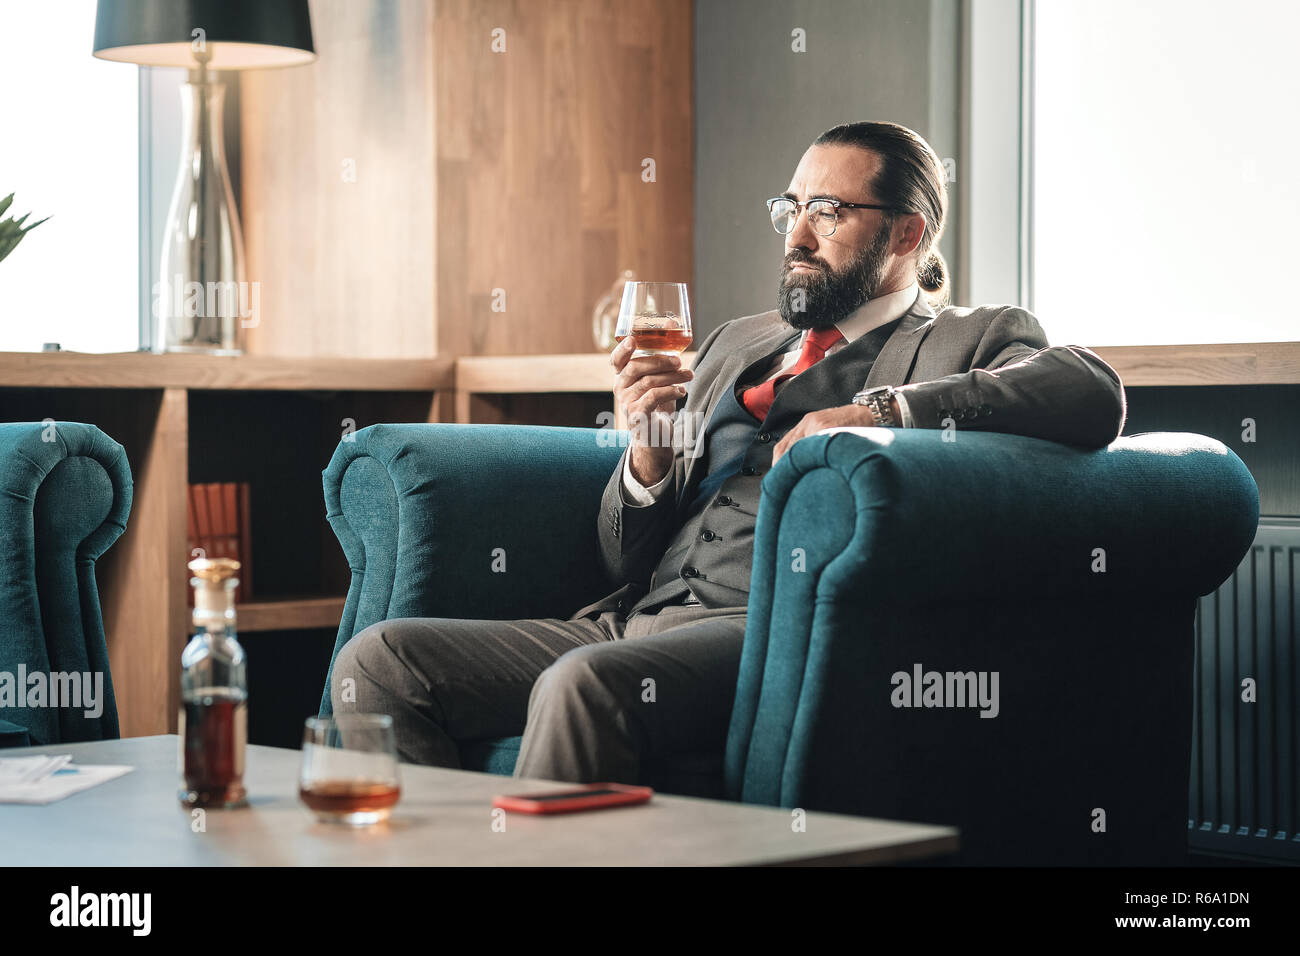 Experienced advocate drinking some whisky while feeling concerned - Stock Image